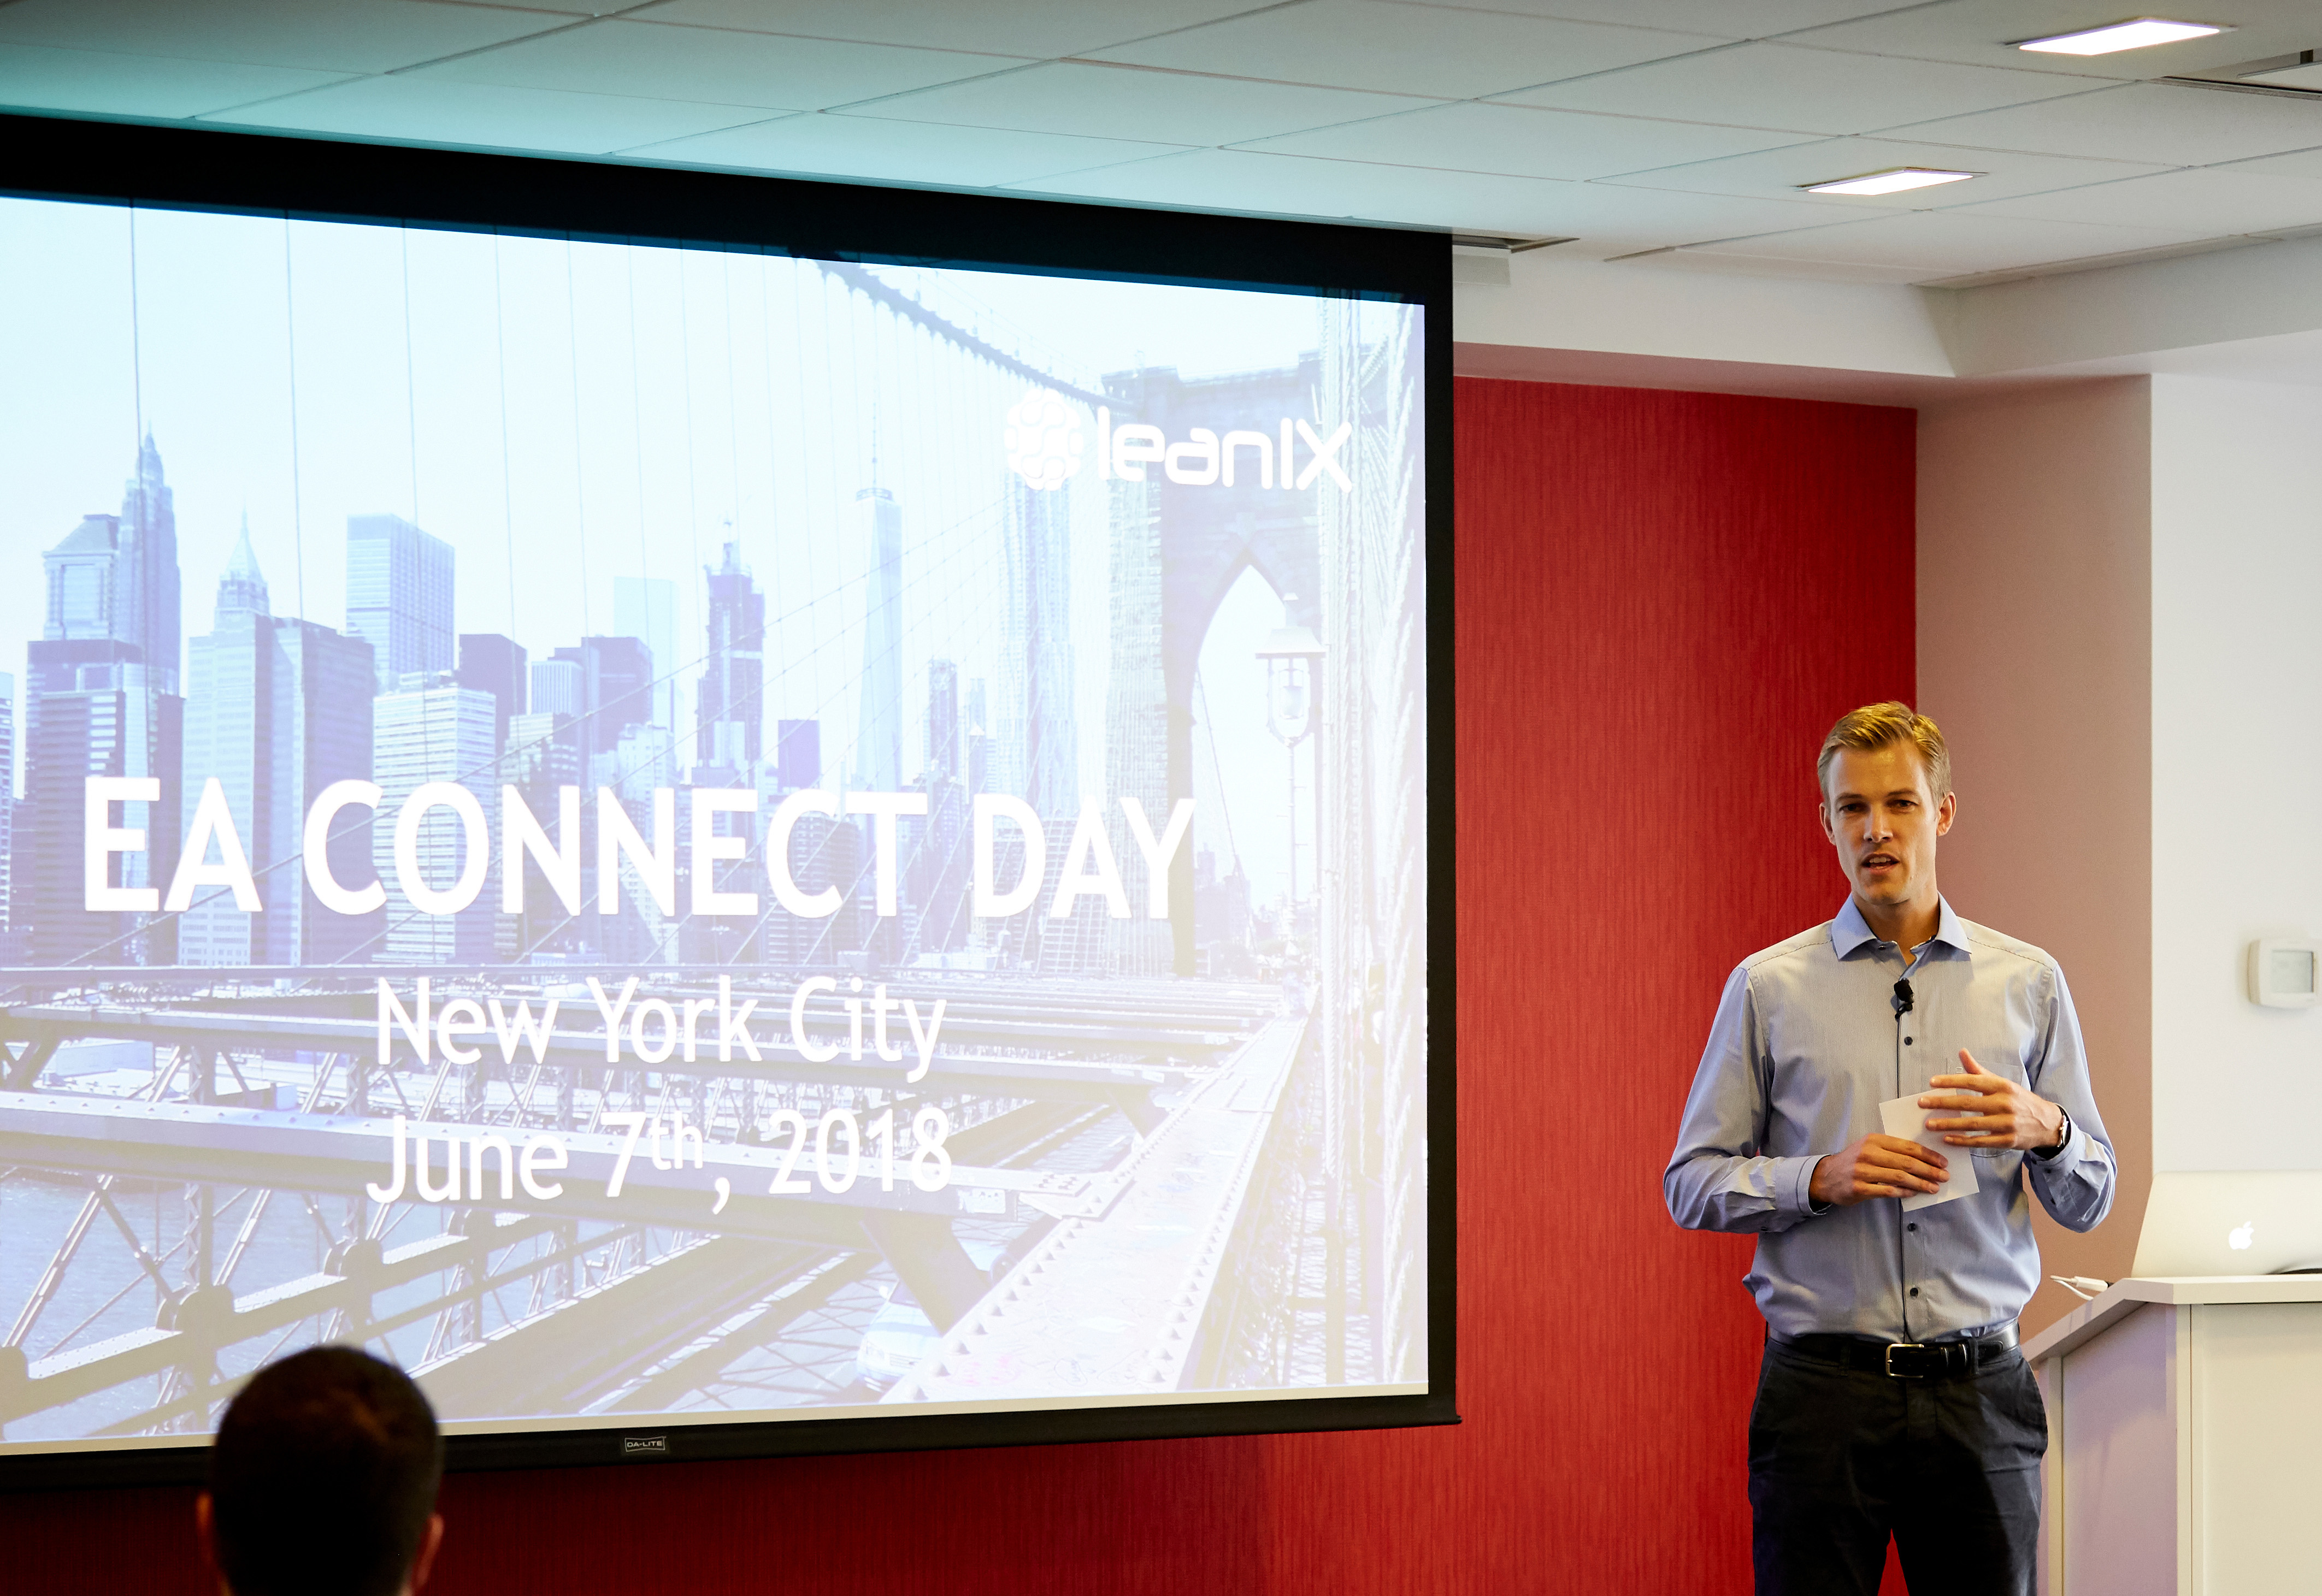 US EA Connect Day 2019: May 30, New York City